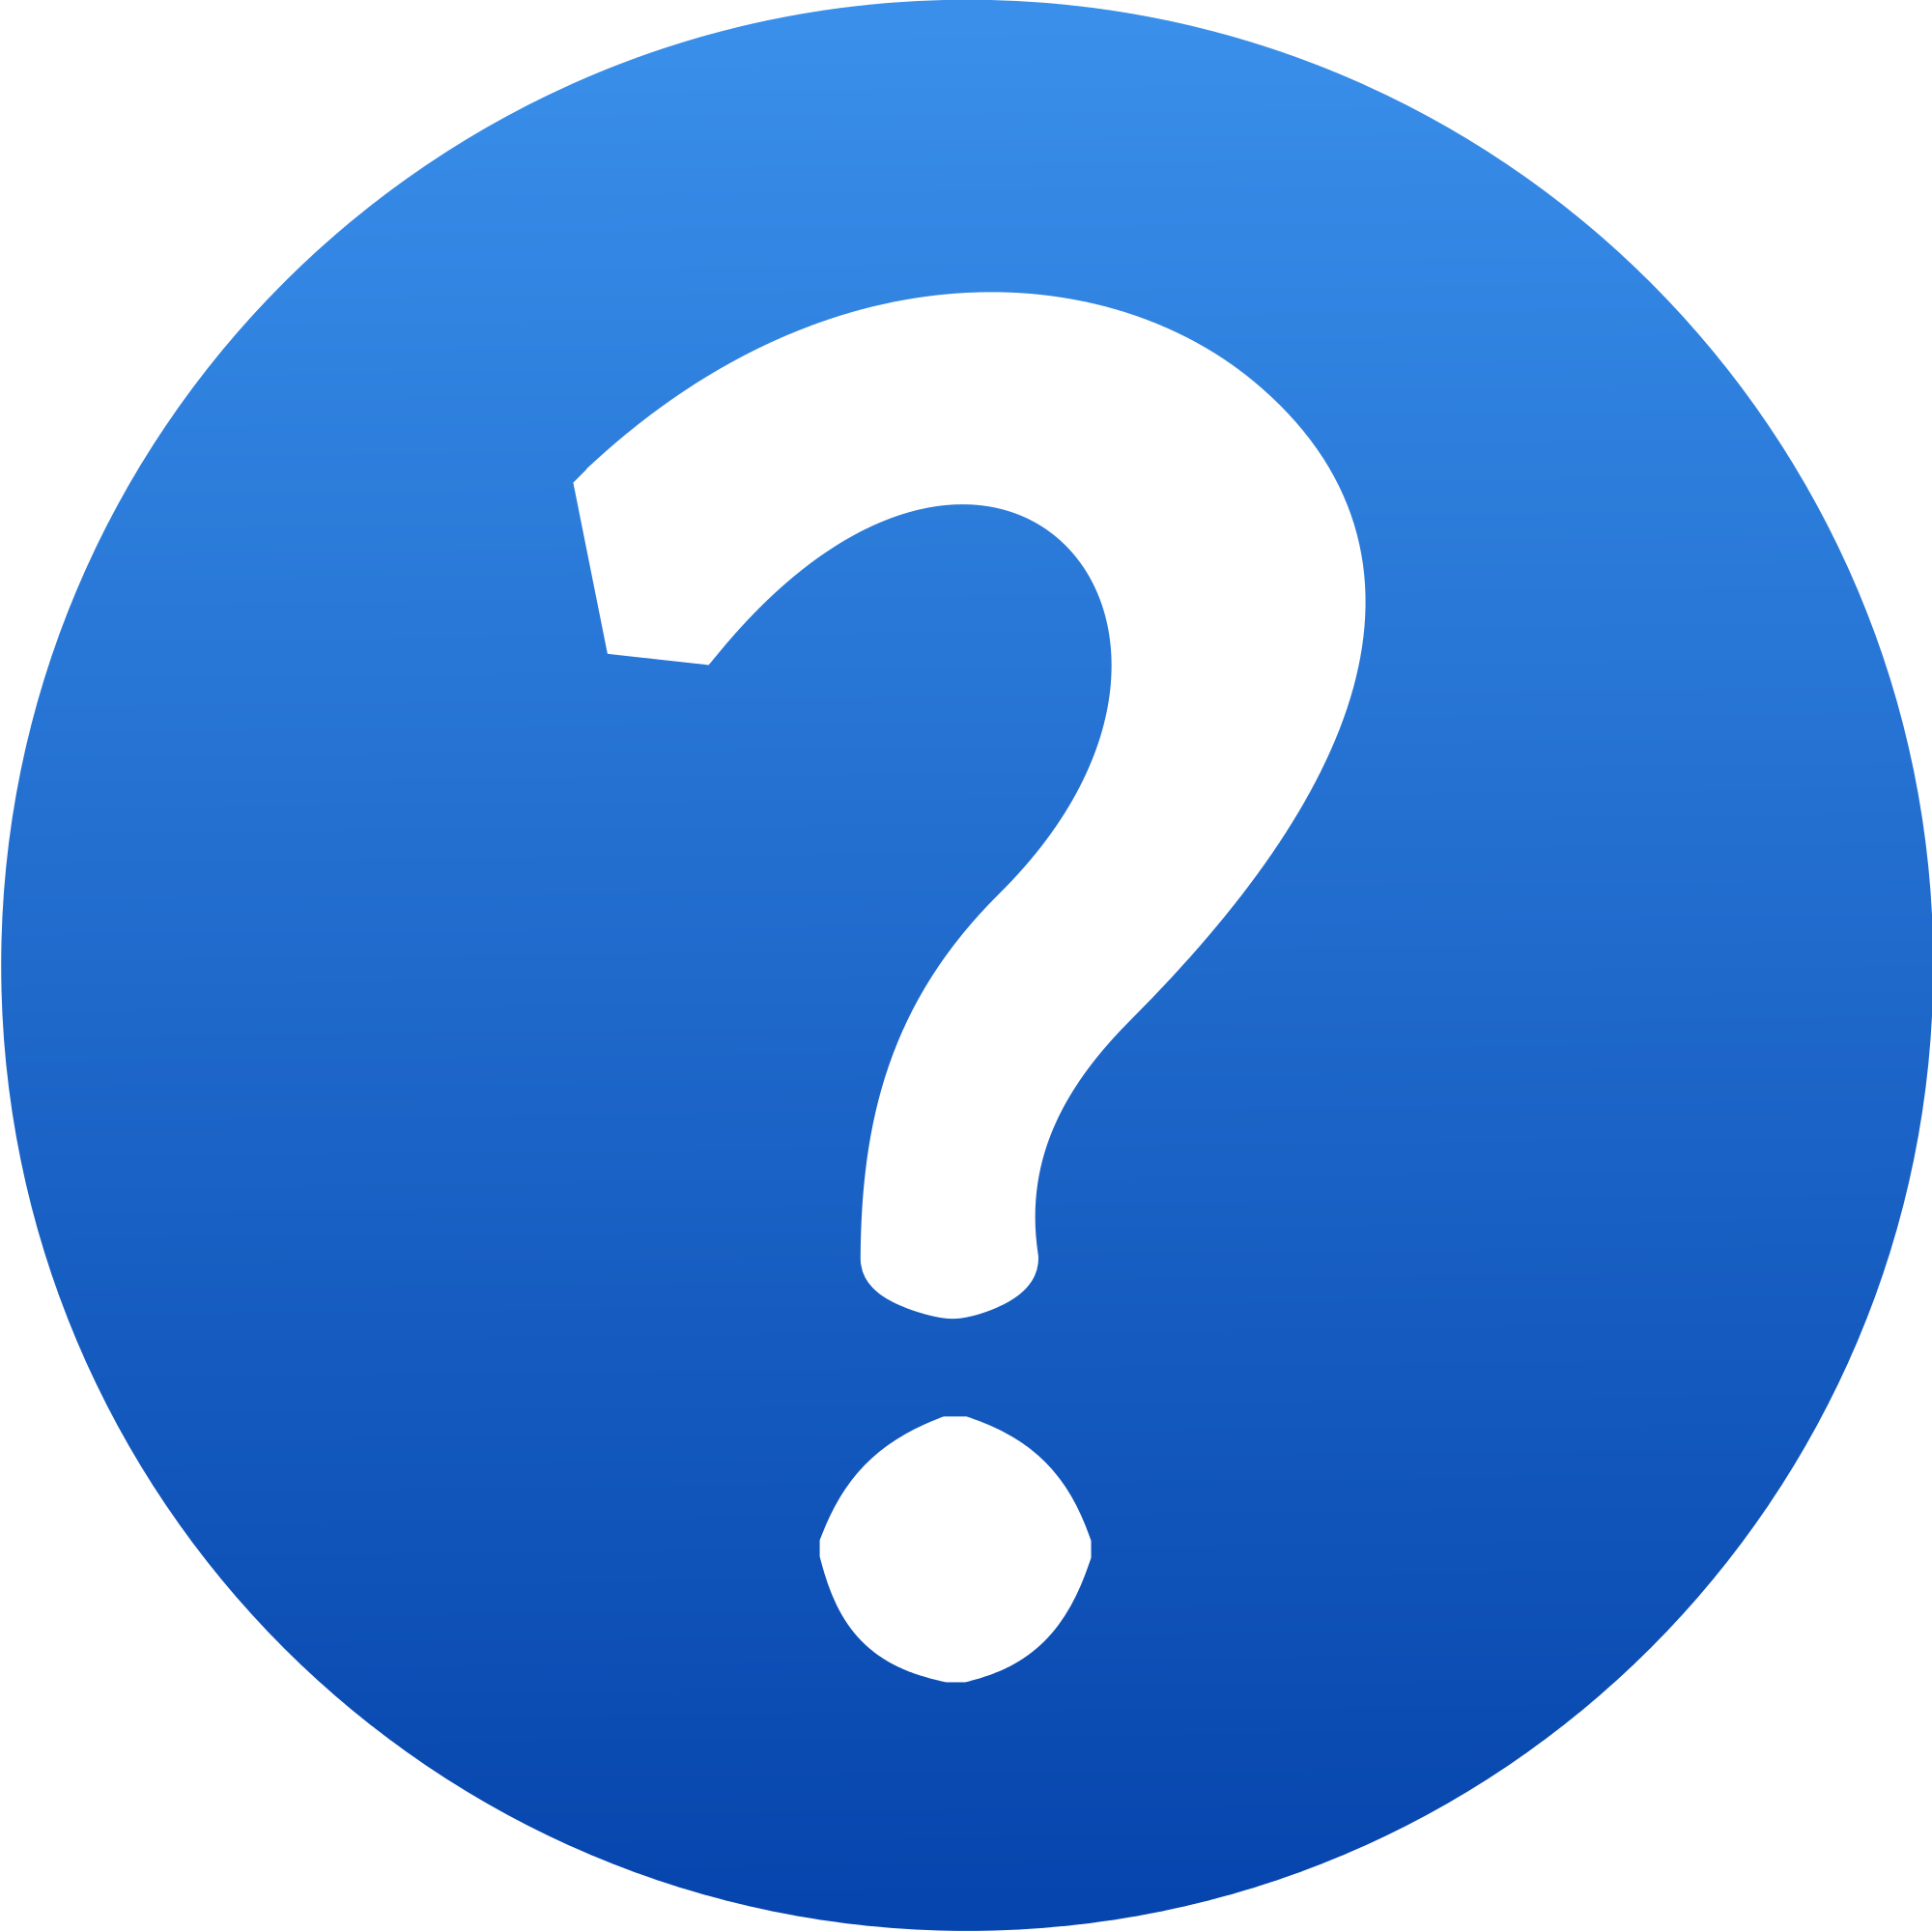 Blue question mark png. File icon svg wikimedia